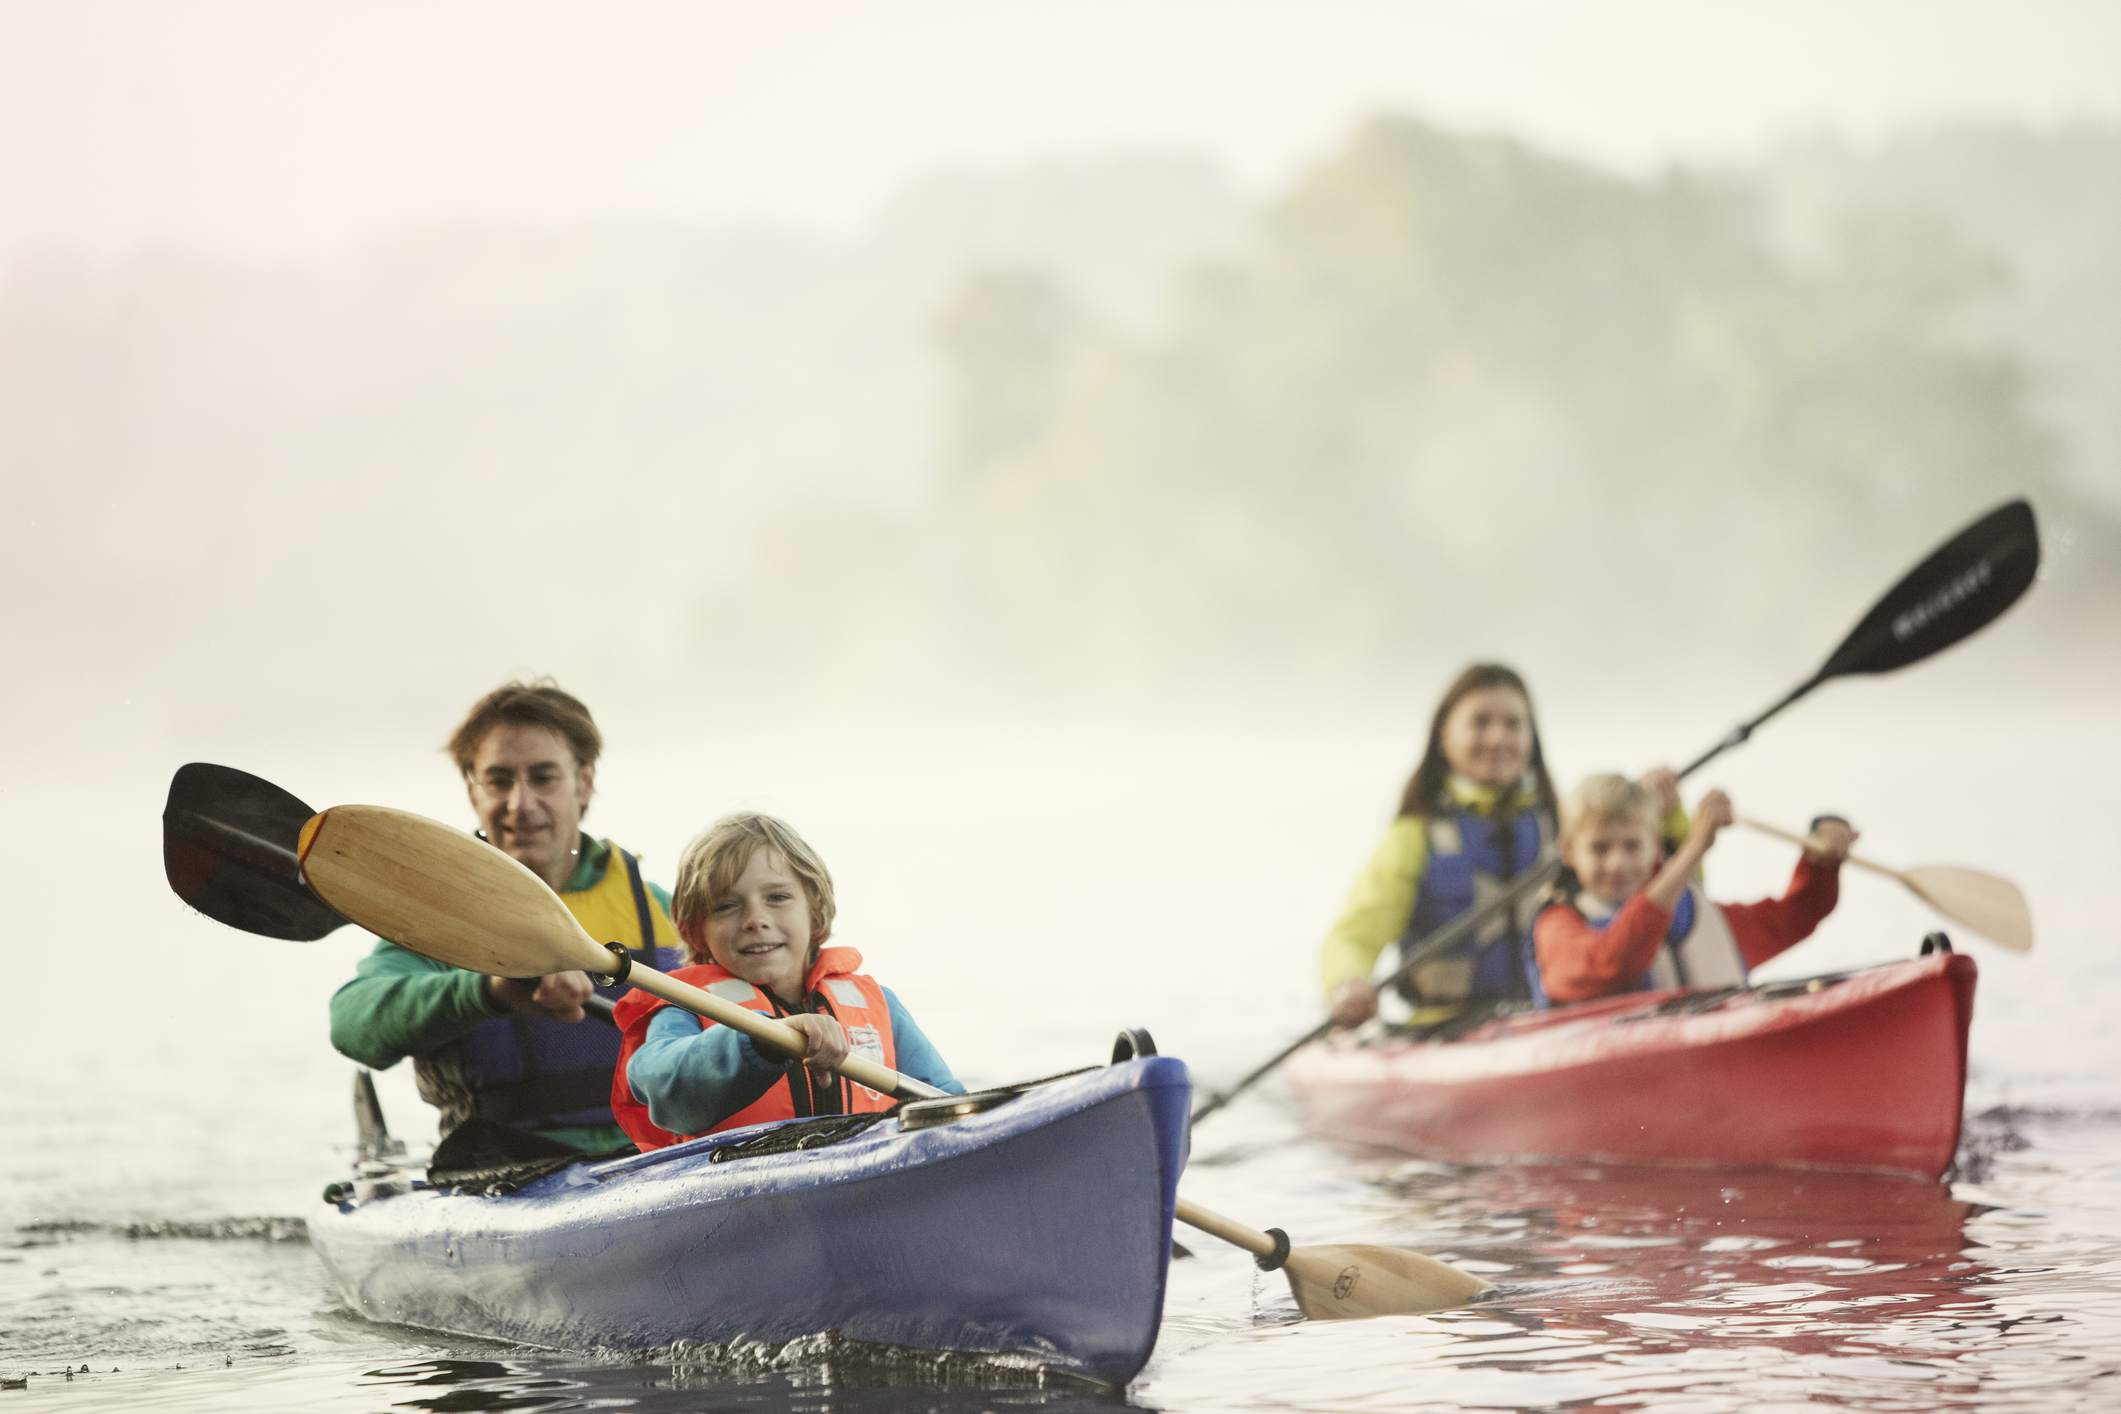 A family kayaking on a river.